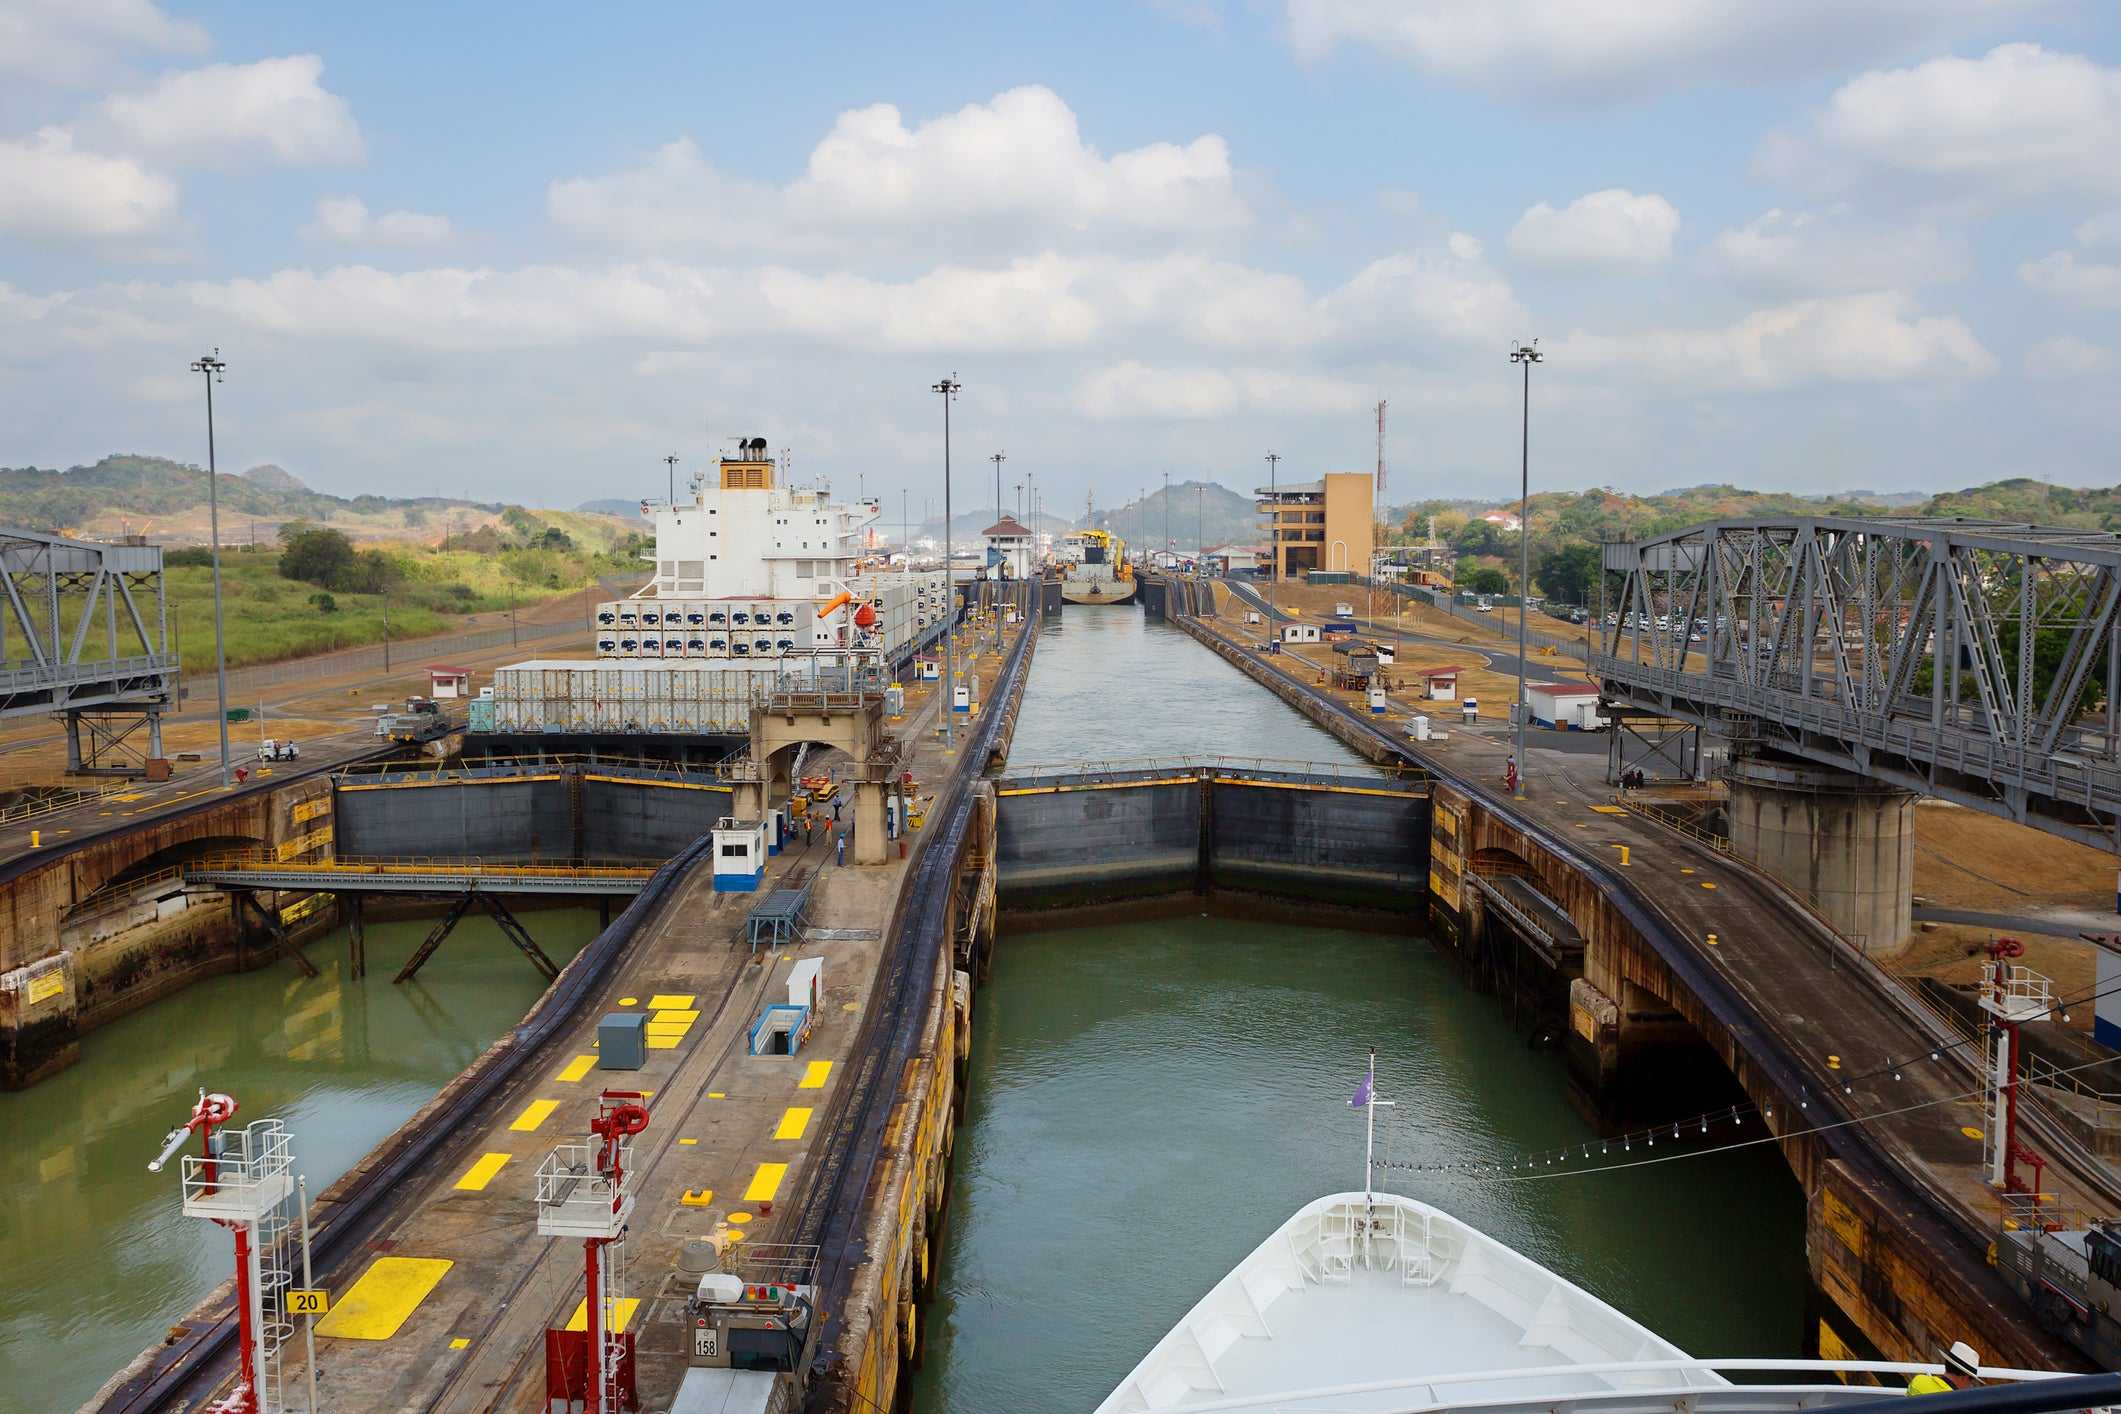 The first lock of the Panama canal from the Pacific ocean